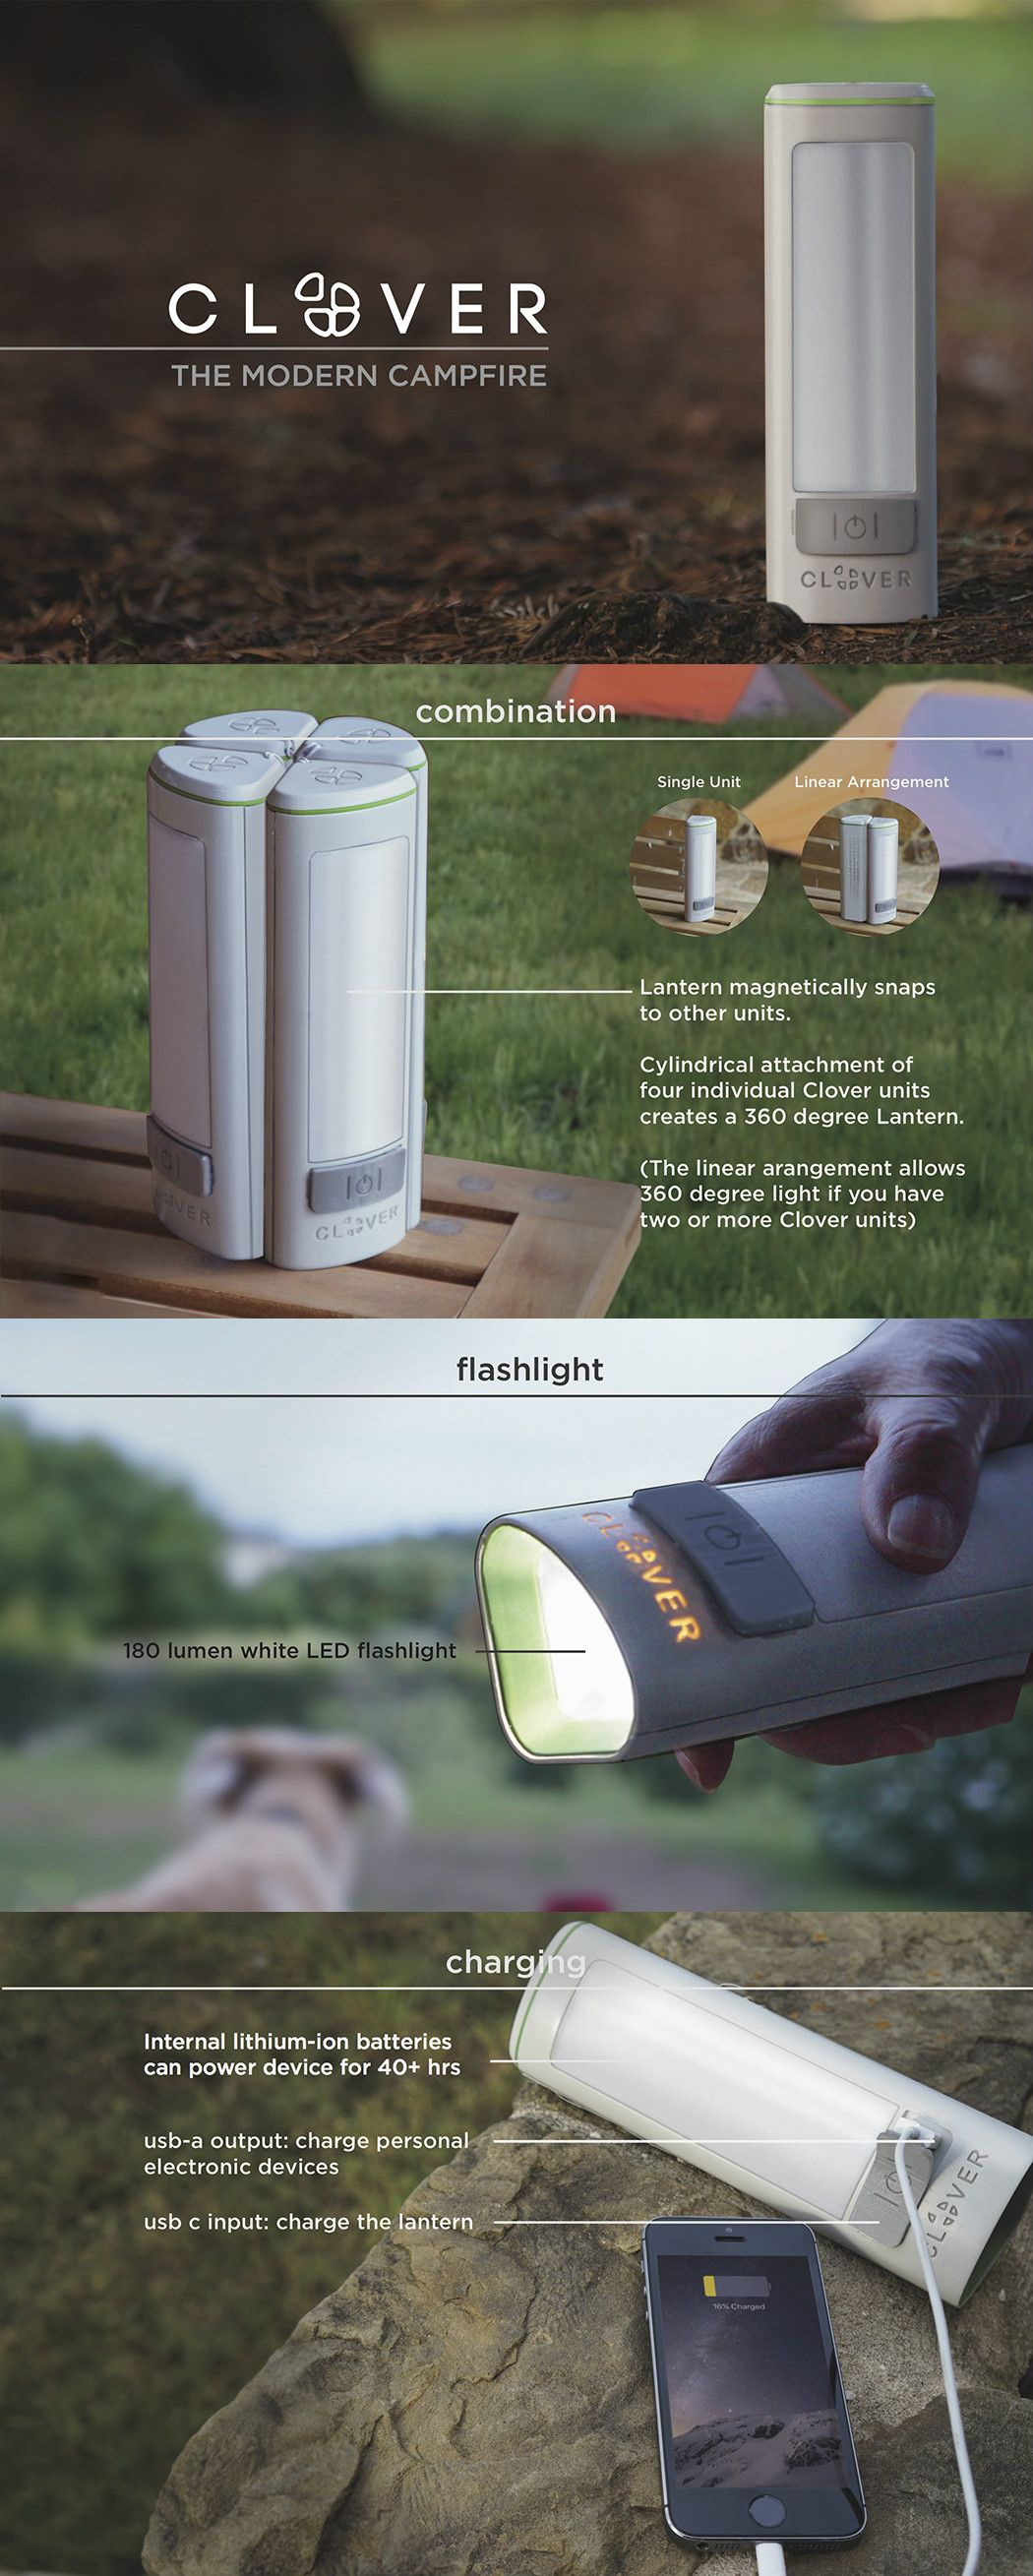 Wonderful Replacing The Campfire With U0027lampu0027fire Good Looking